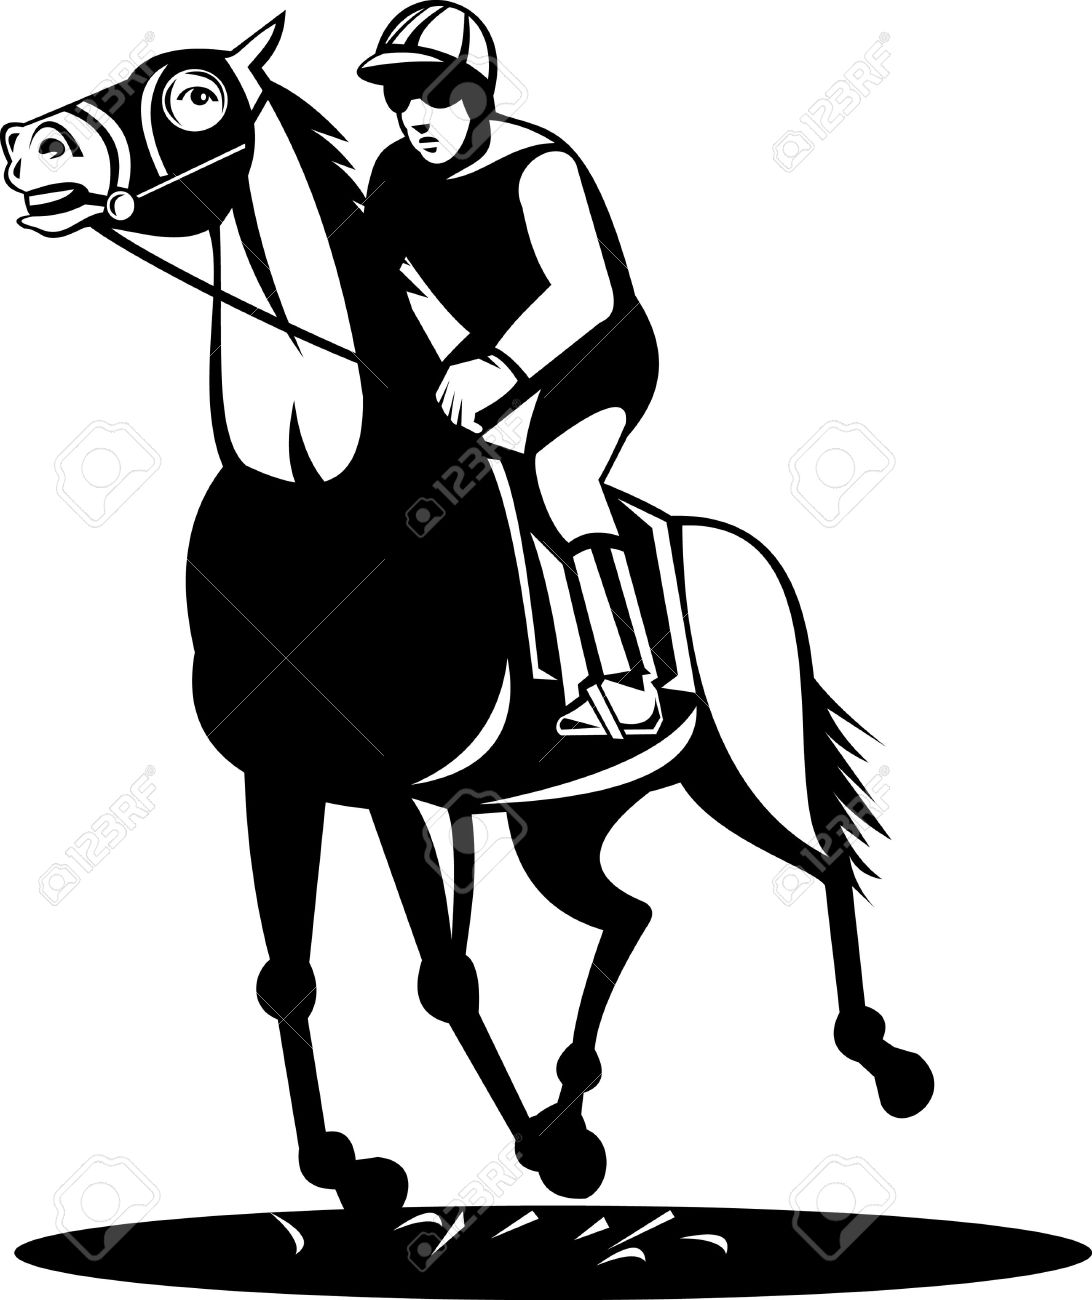 Horse And Jockey On A Winning Run Royalty Free Cliparts, Vectors.